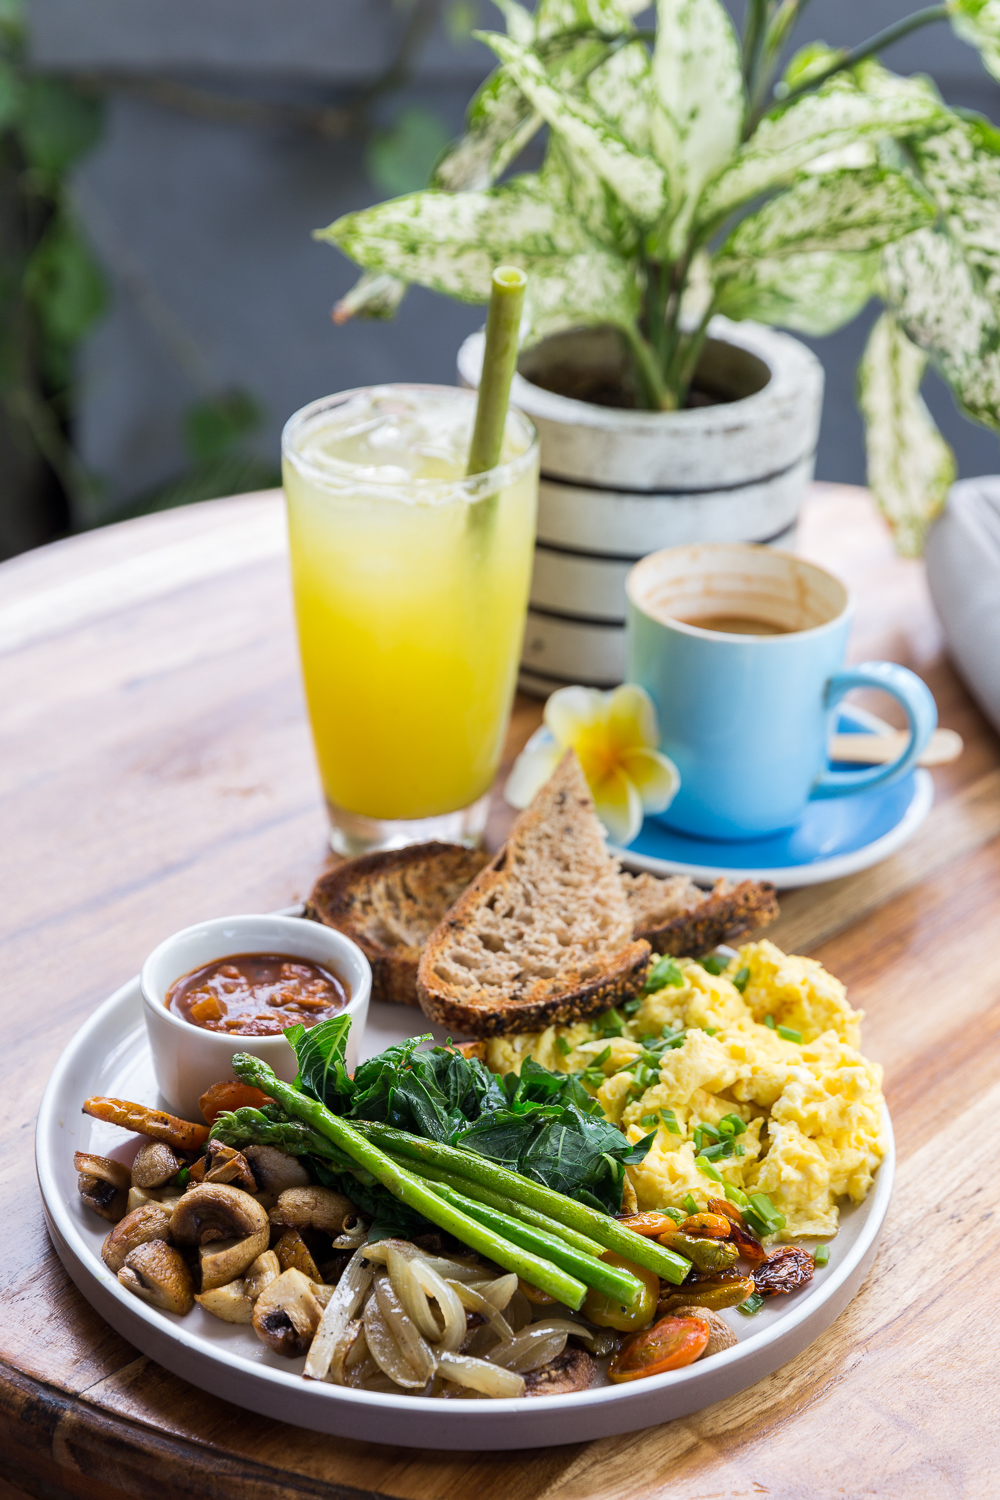 My Canggu breakfast cafe guide - Bali